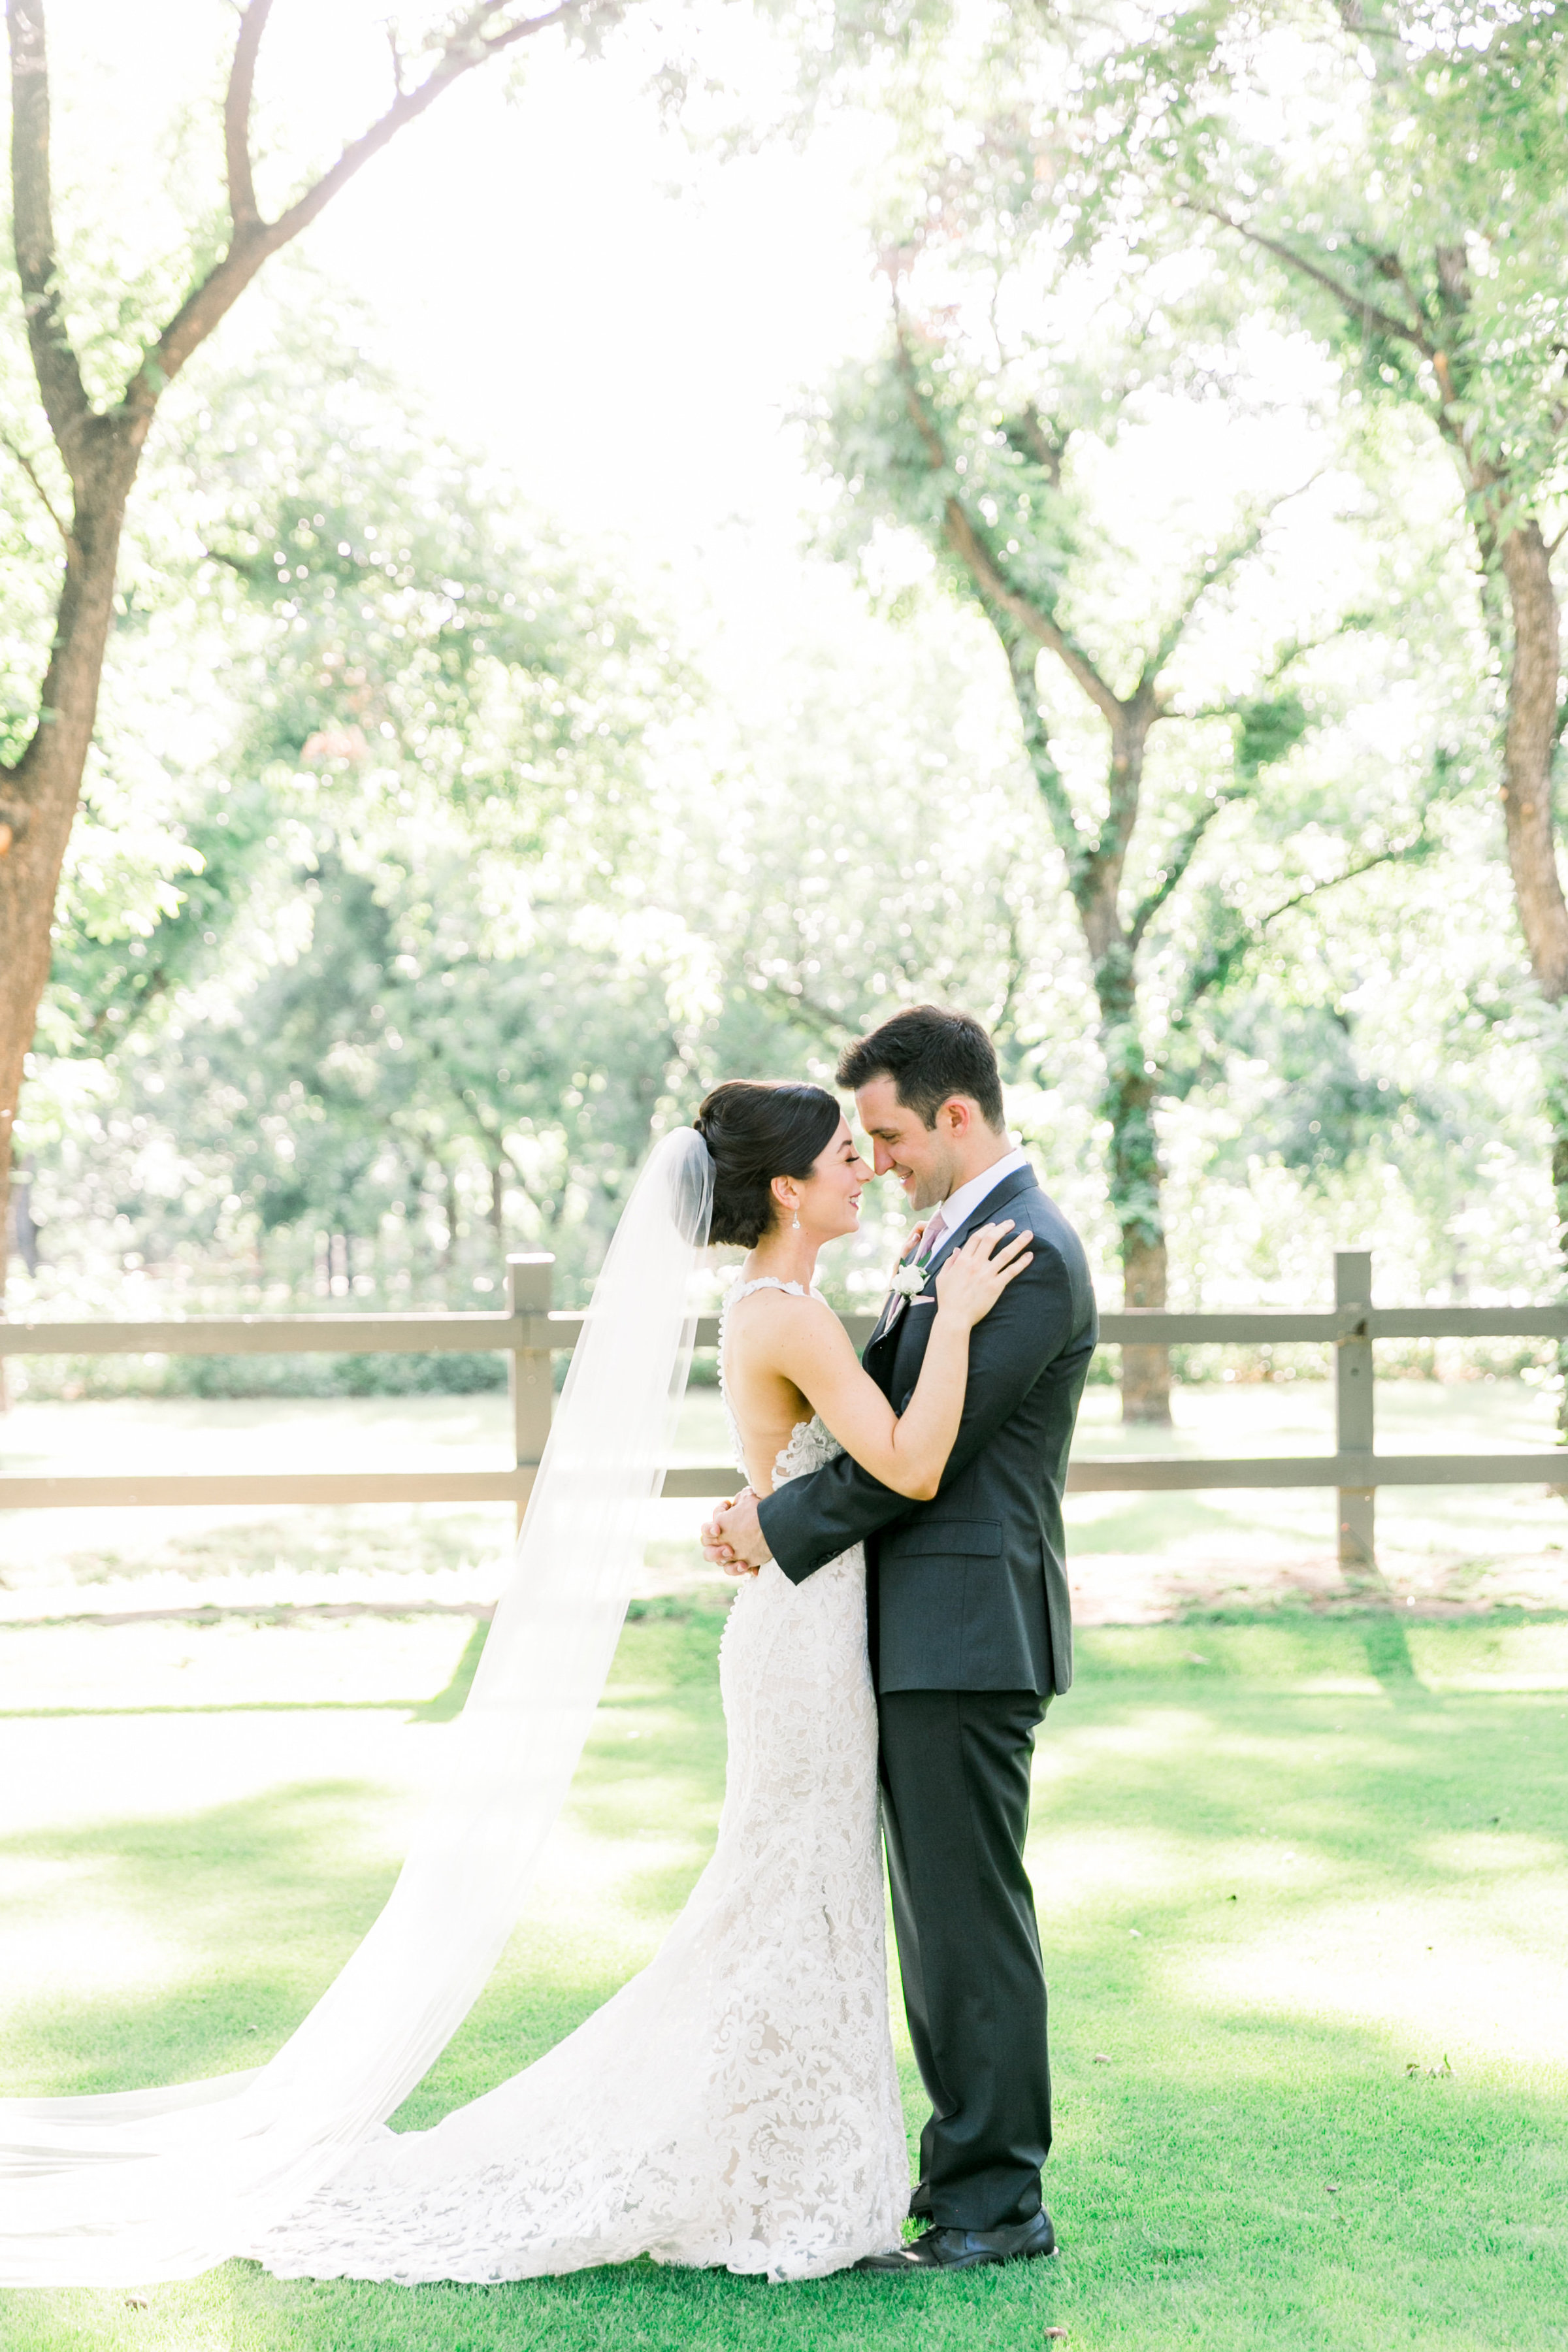 Karlie Colleen Photography - Arizona Wedding - Venue At The Grove - Maggie & Grant-436